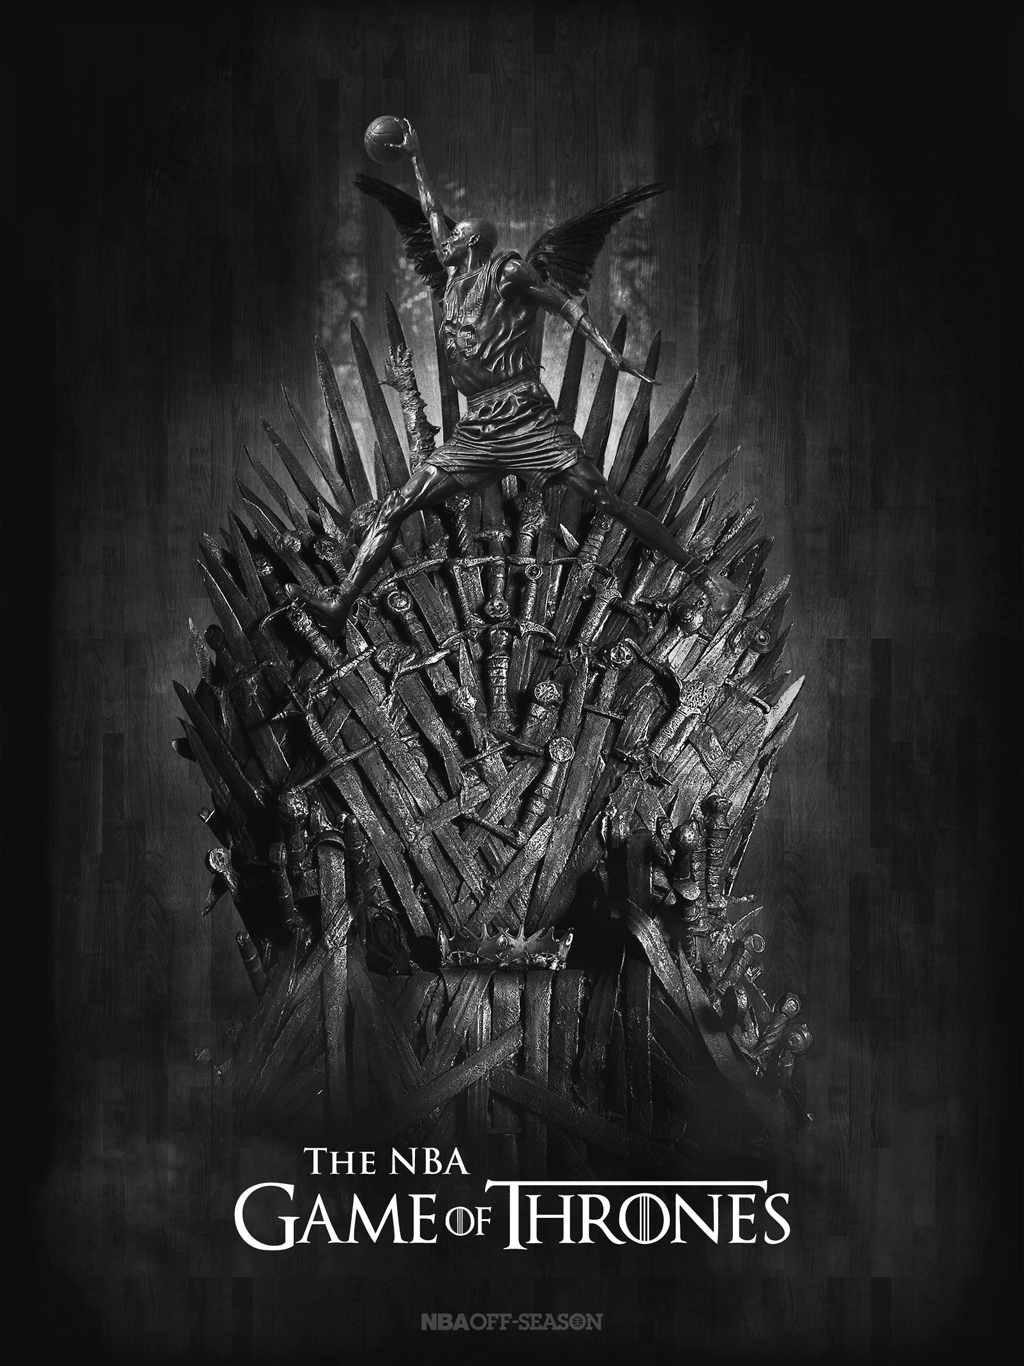 The Nba Finals Is A Game Of Thrones And Tonight We Could See A New King Take Their Rightful Seat On The Iron Throne Nba Basketball Fans Battle Of Blackwater